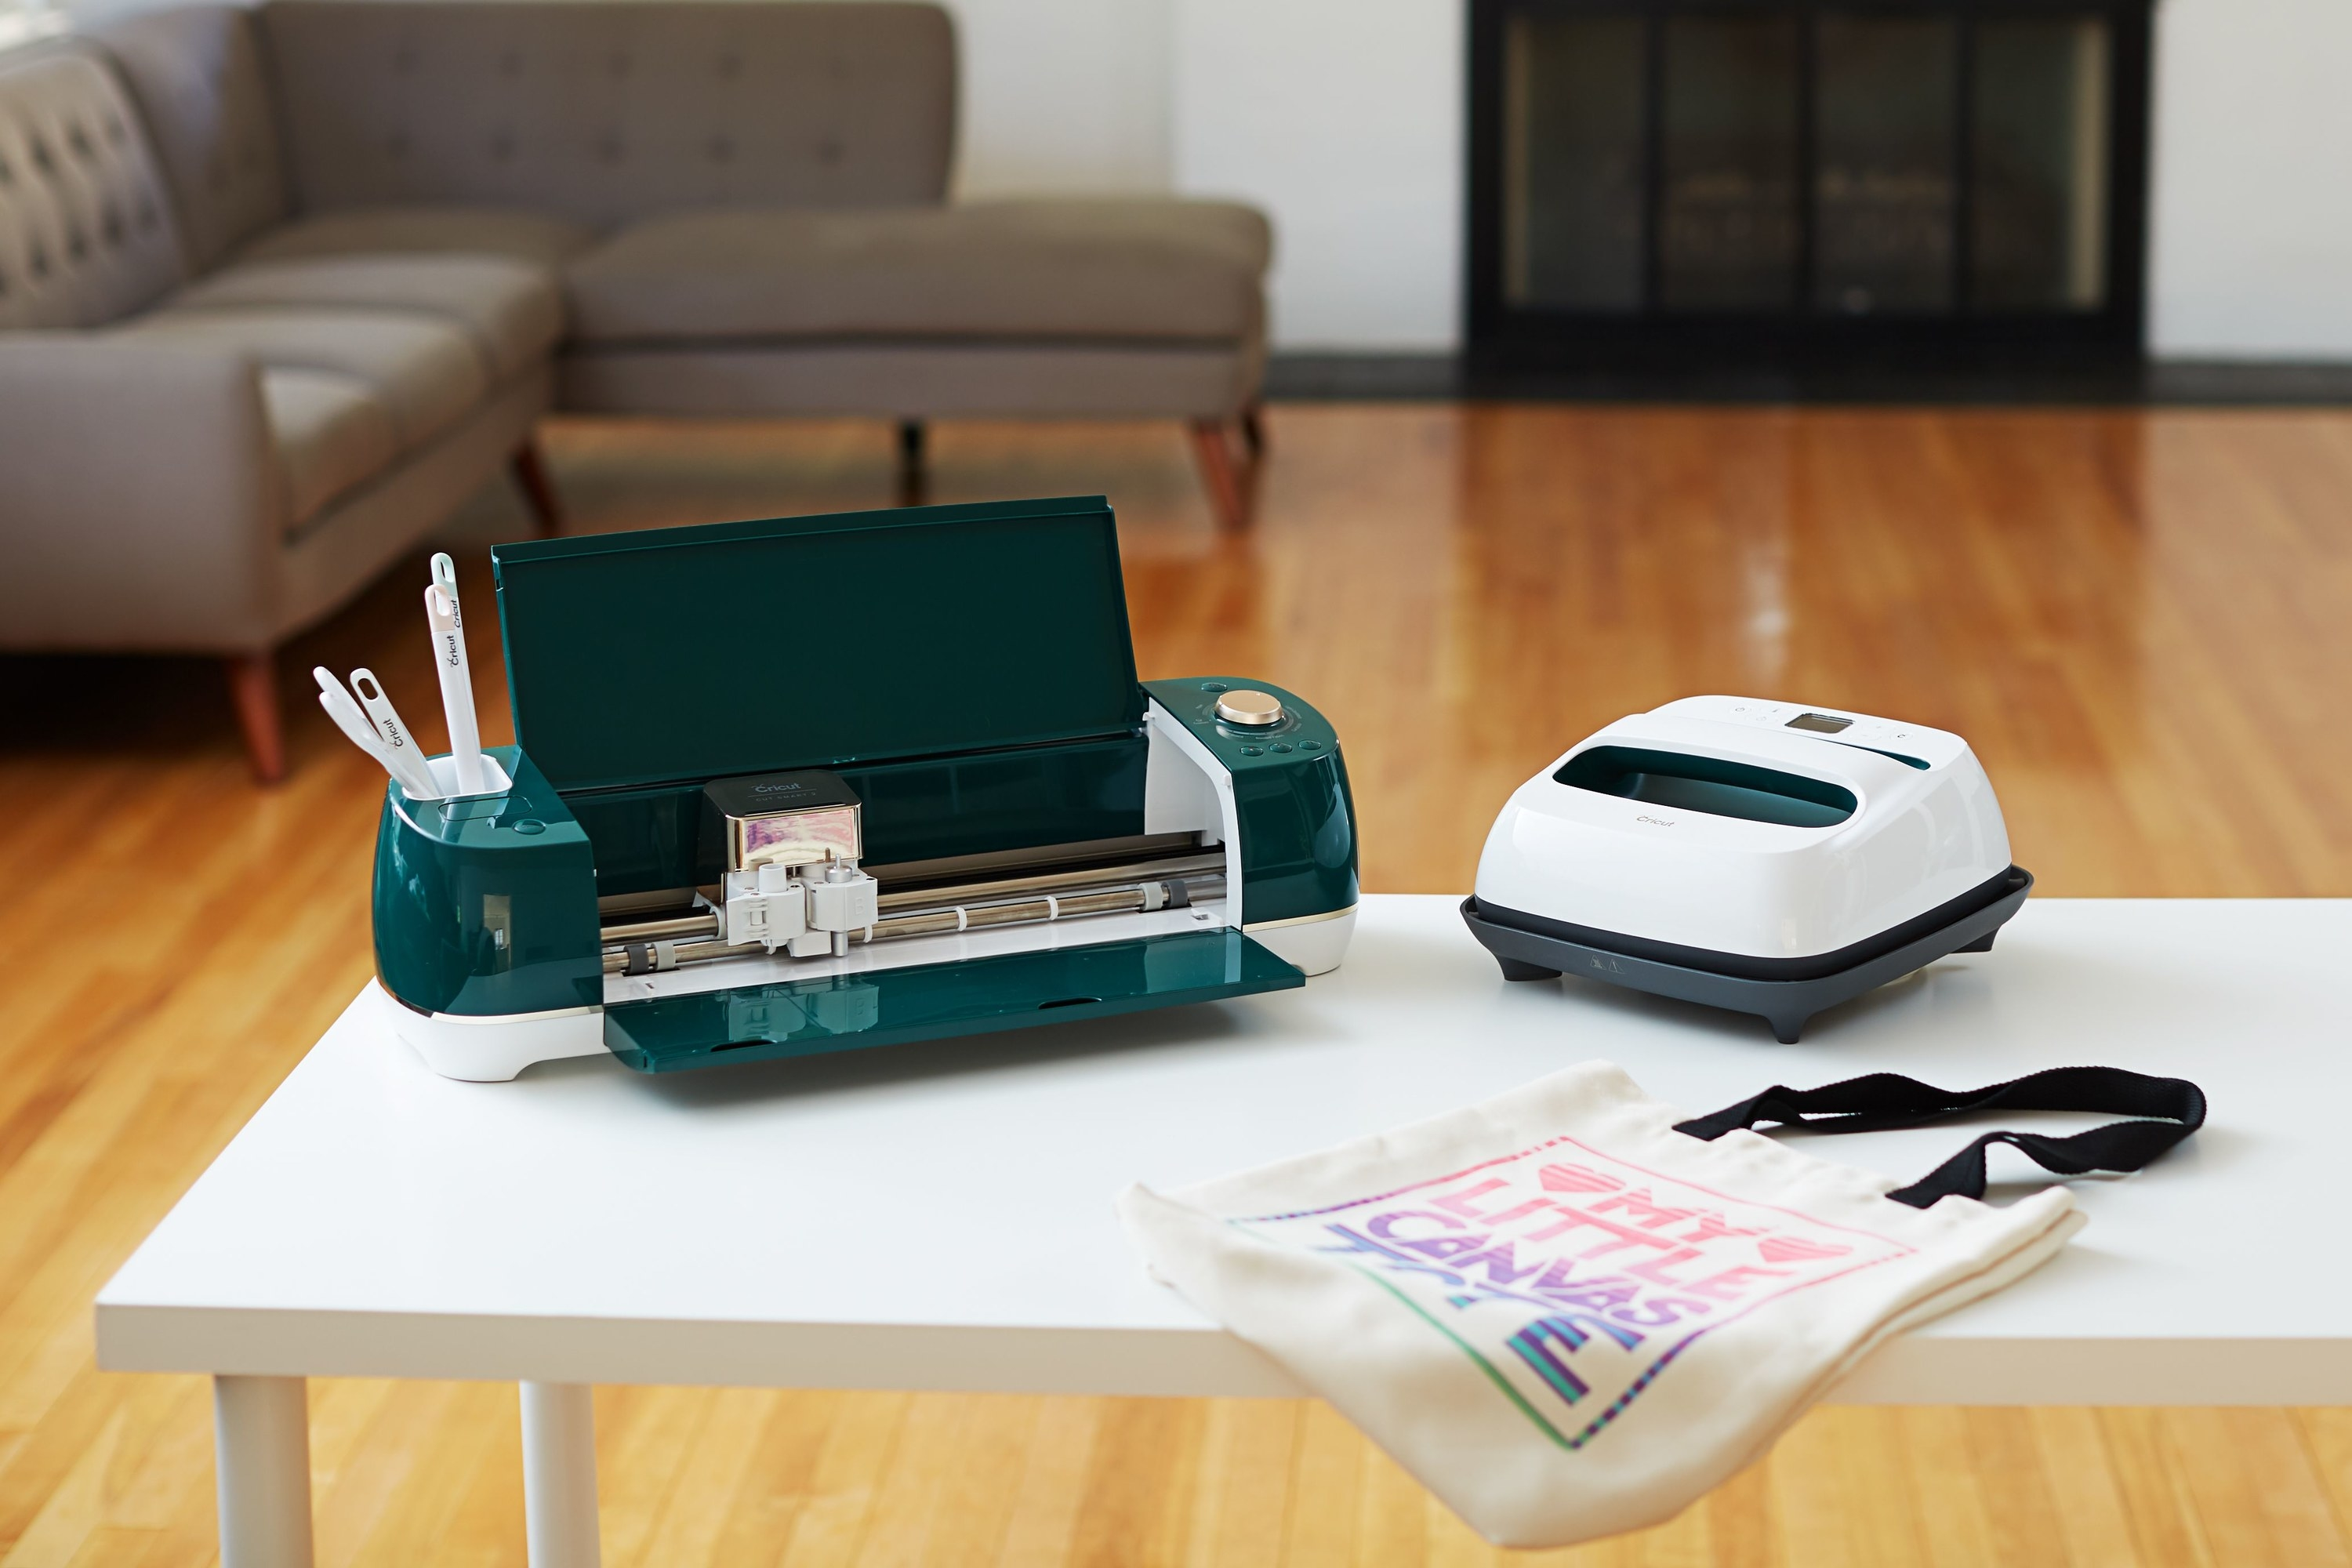 Cricut machine on a desk next to other crafting supplies